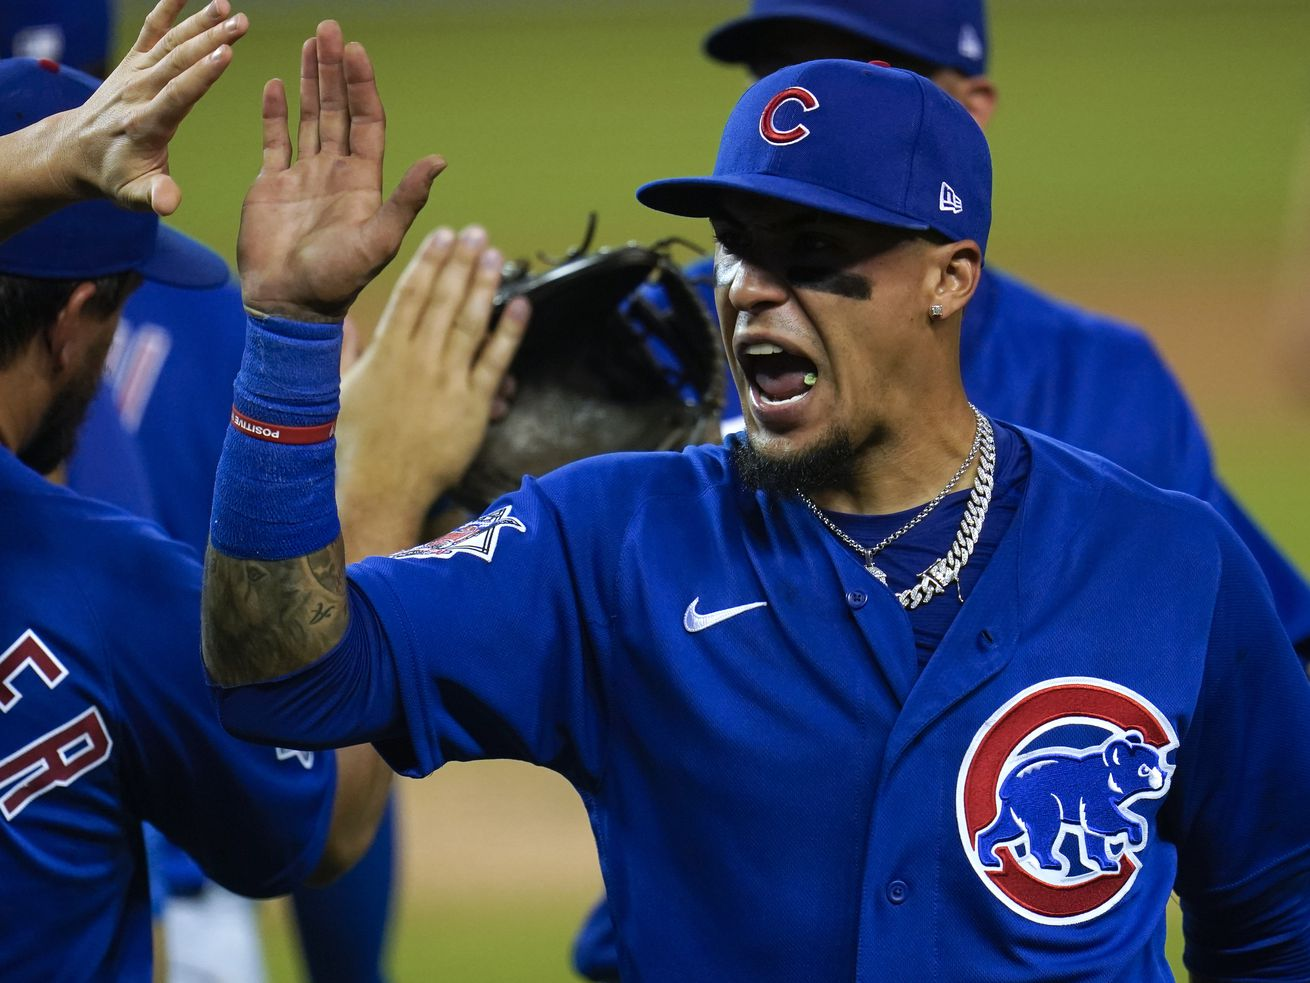 Javy Baez's two-homer night leads Cubs' offensive explosion against Tigers